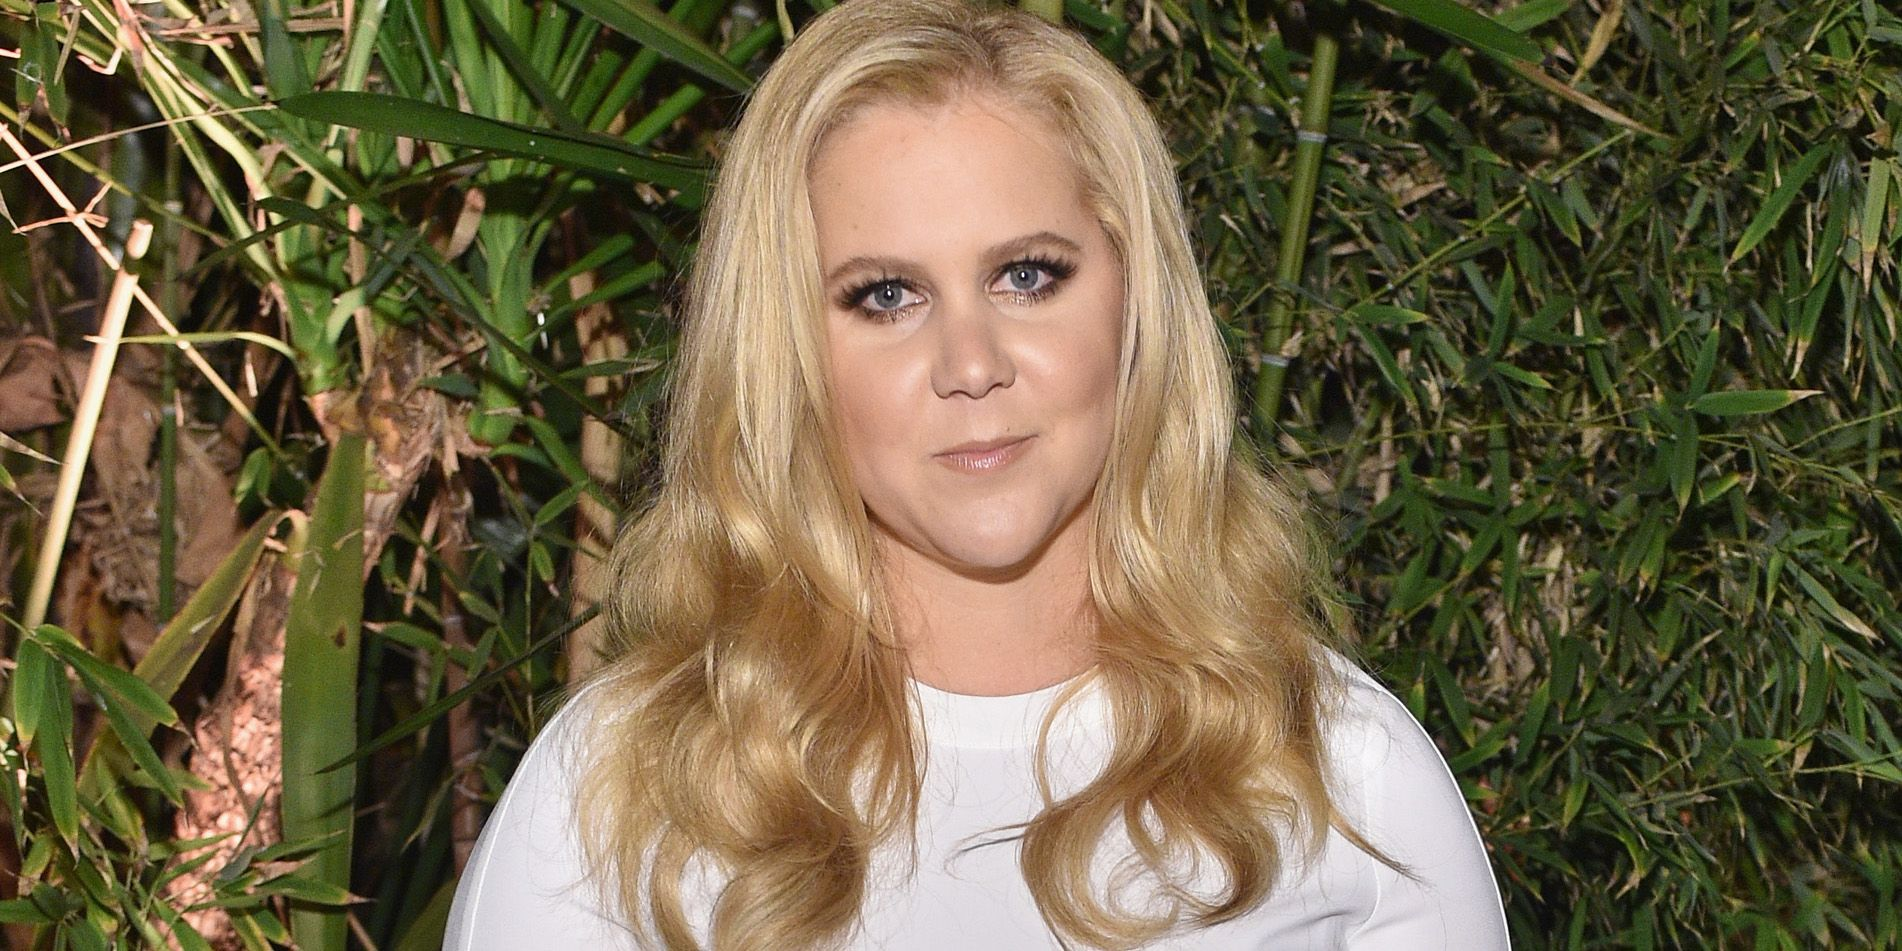 Amy Schumer at GQ party